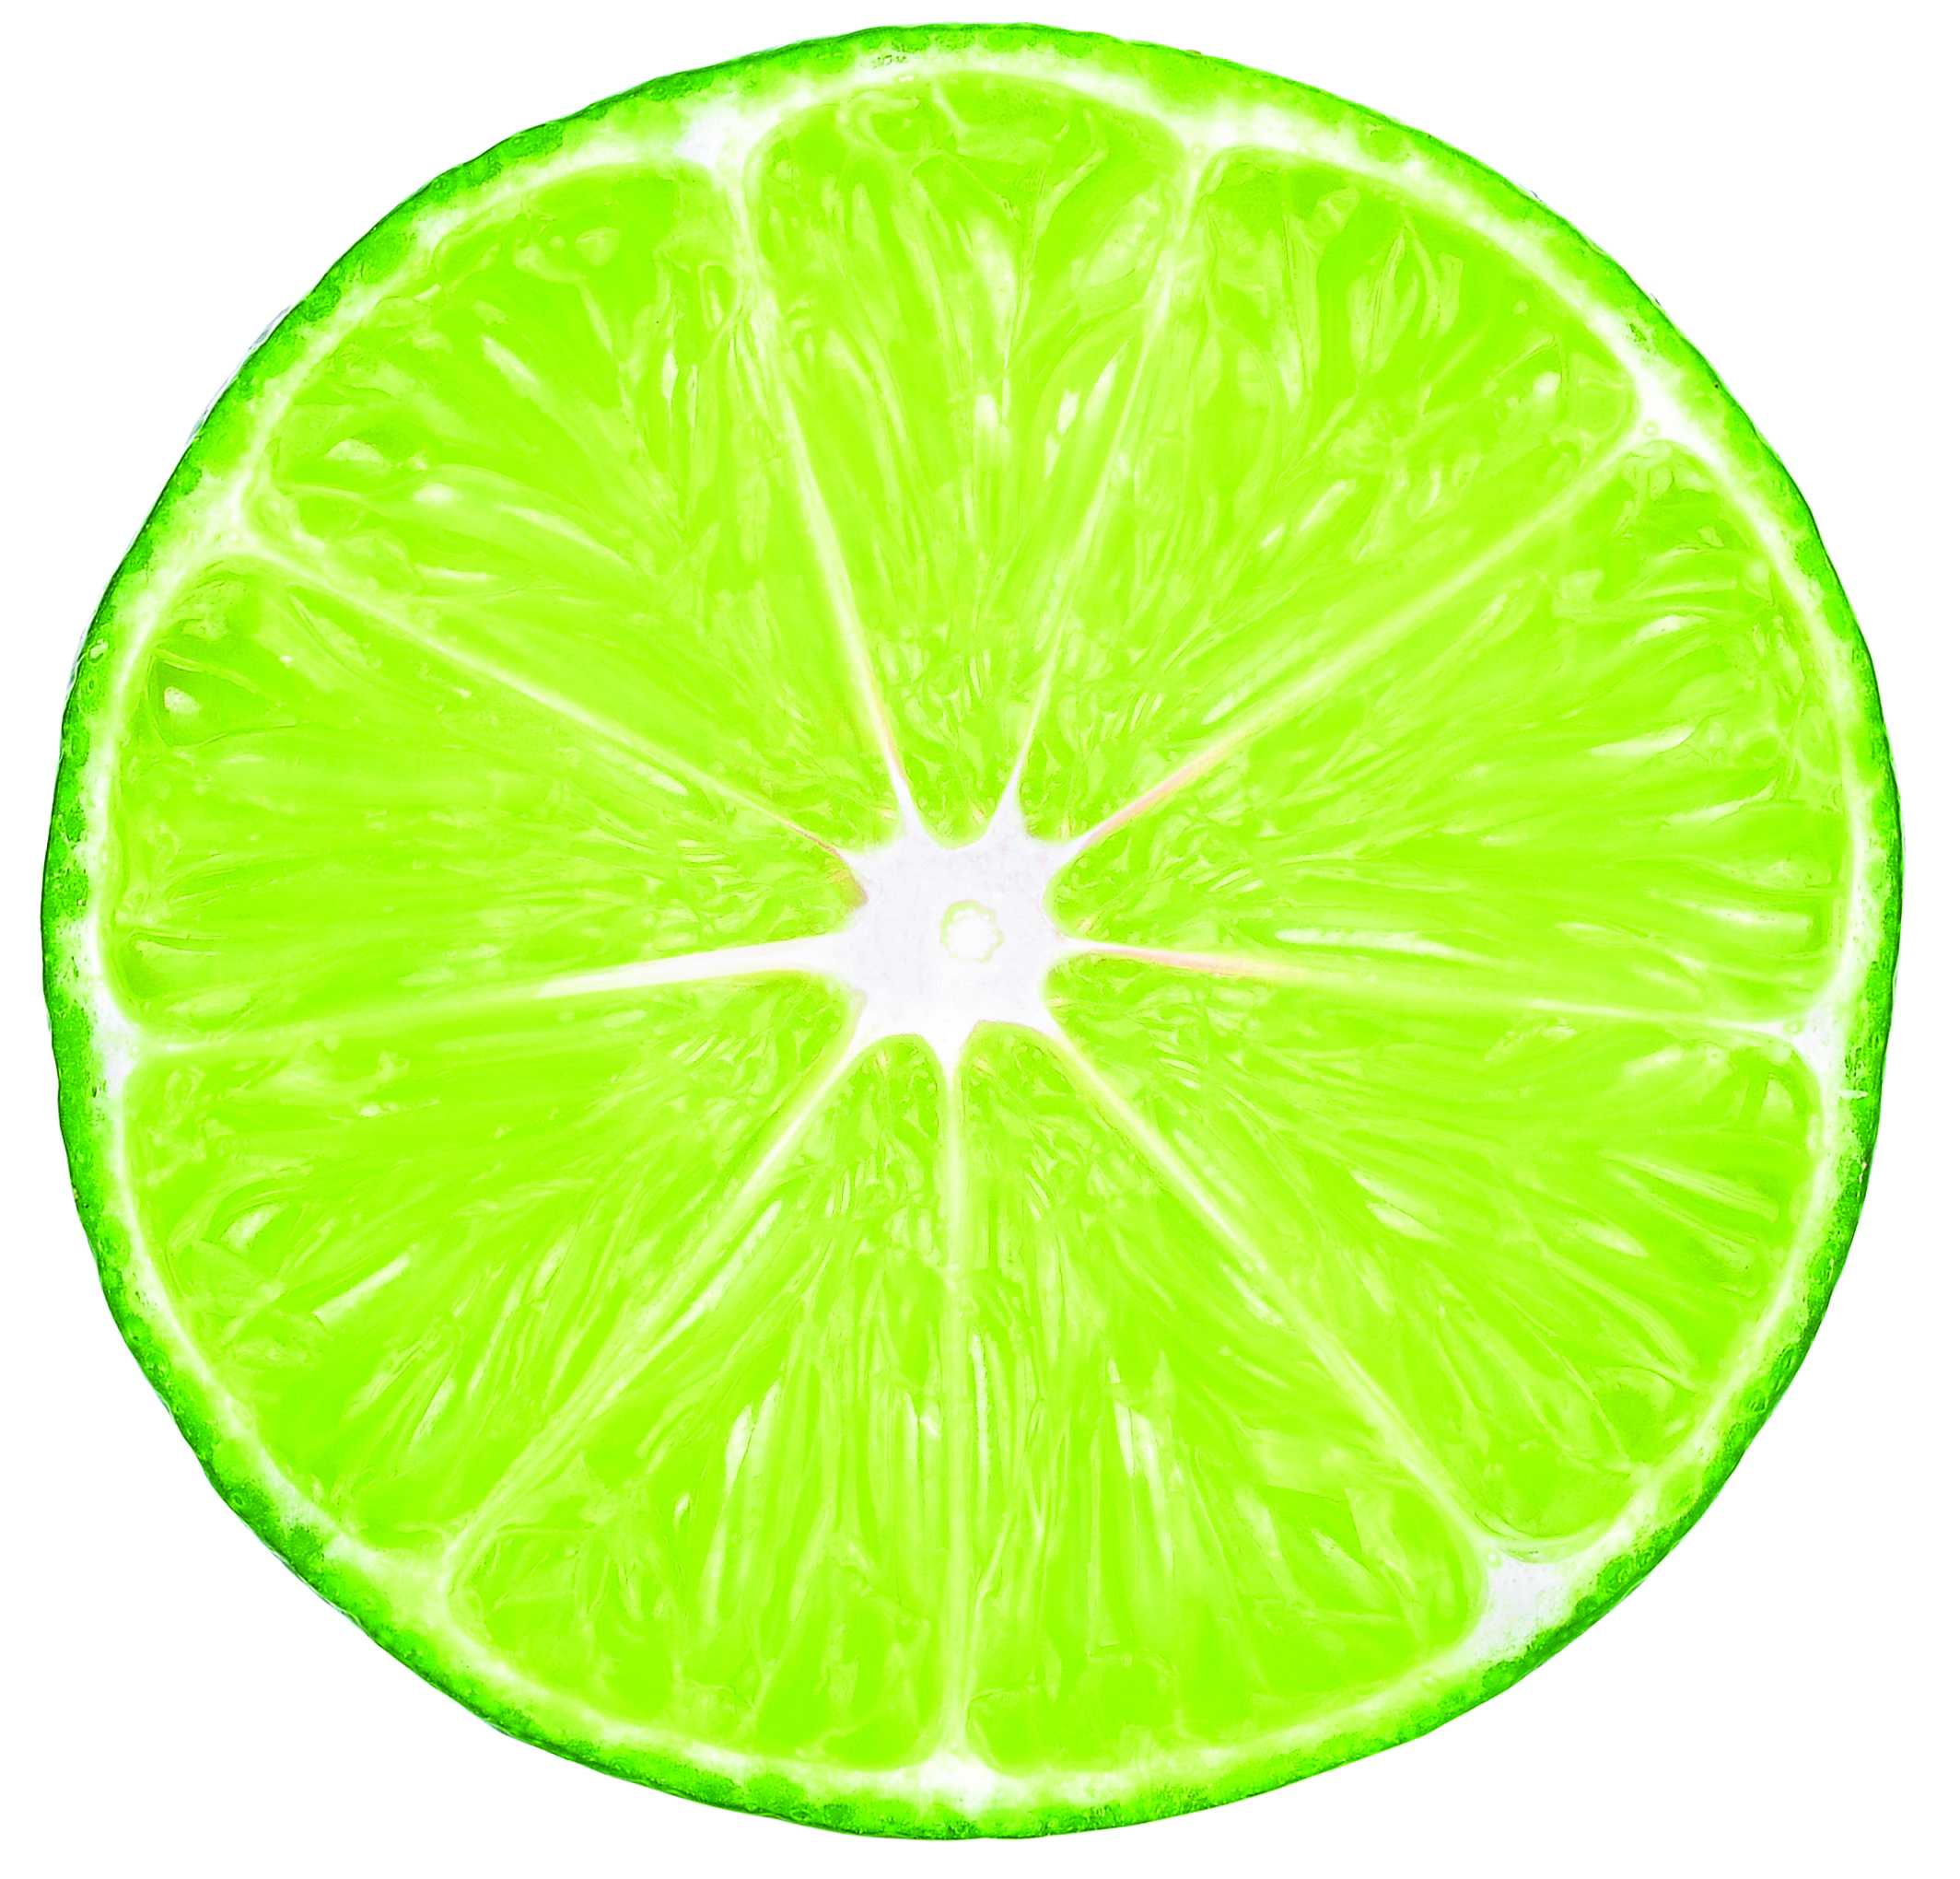 A half of a lime